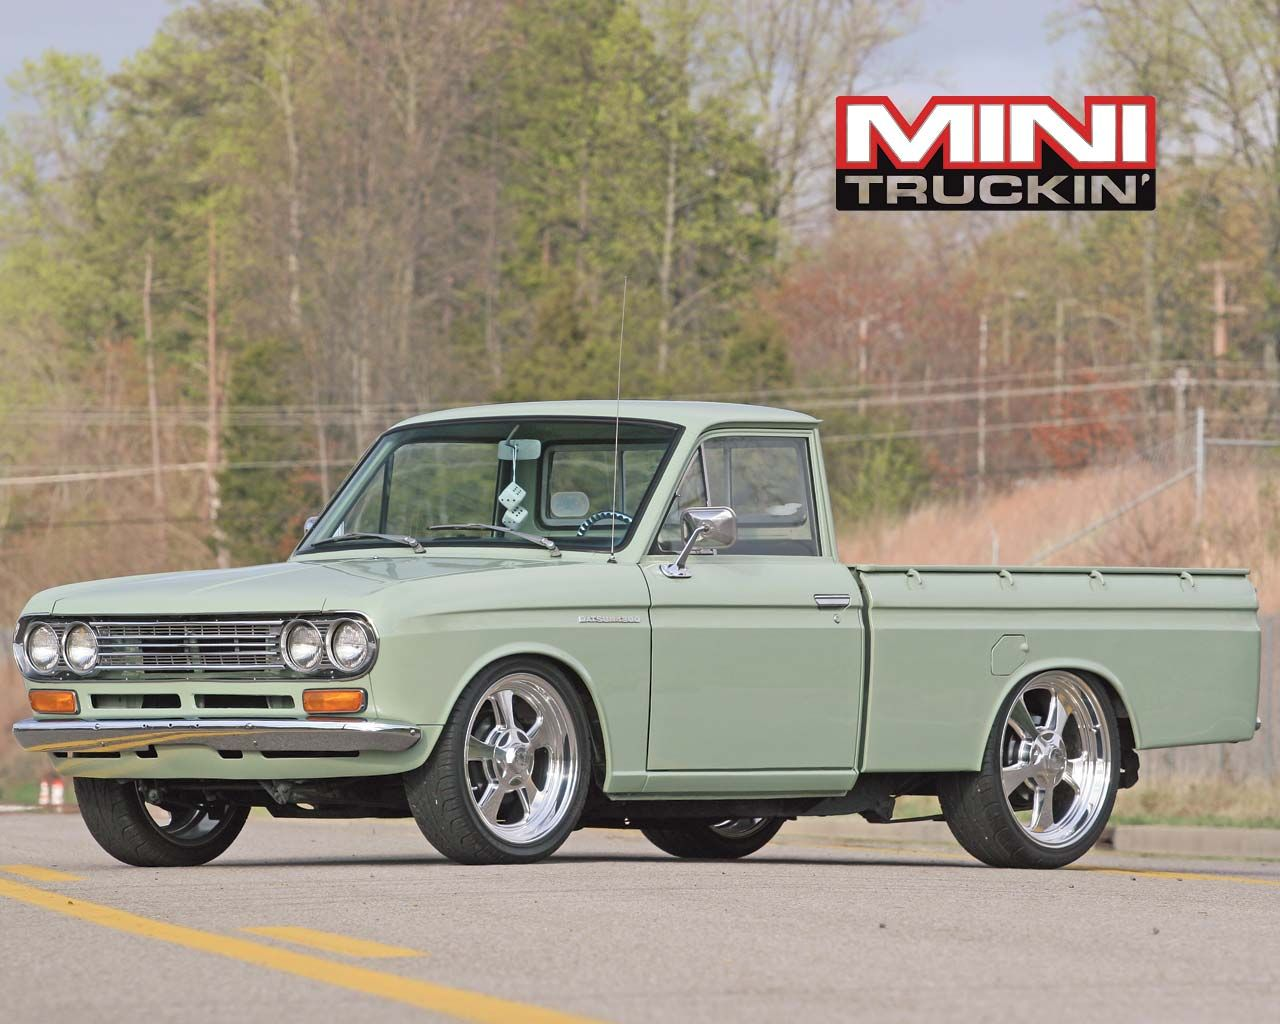 Nissan datsun 510 truck - Truck Mini Truckin Wallpapers Resolution Filesize Kb Added On August Tagged Truck